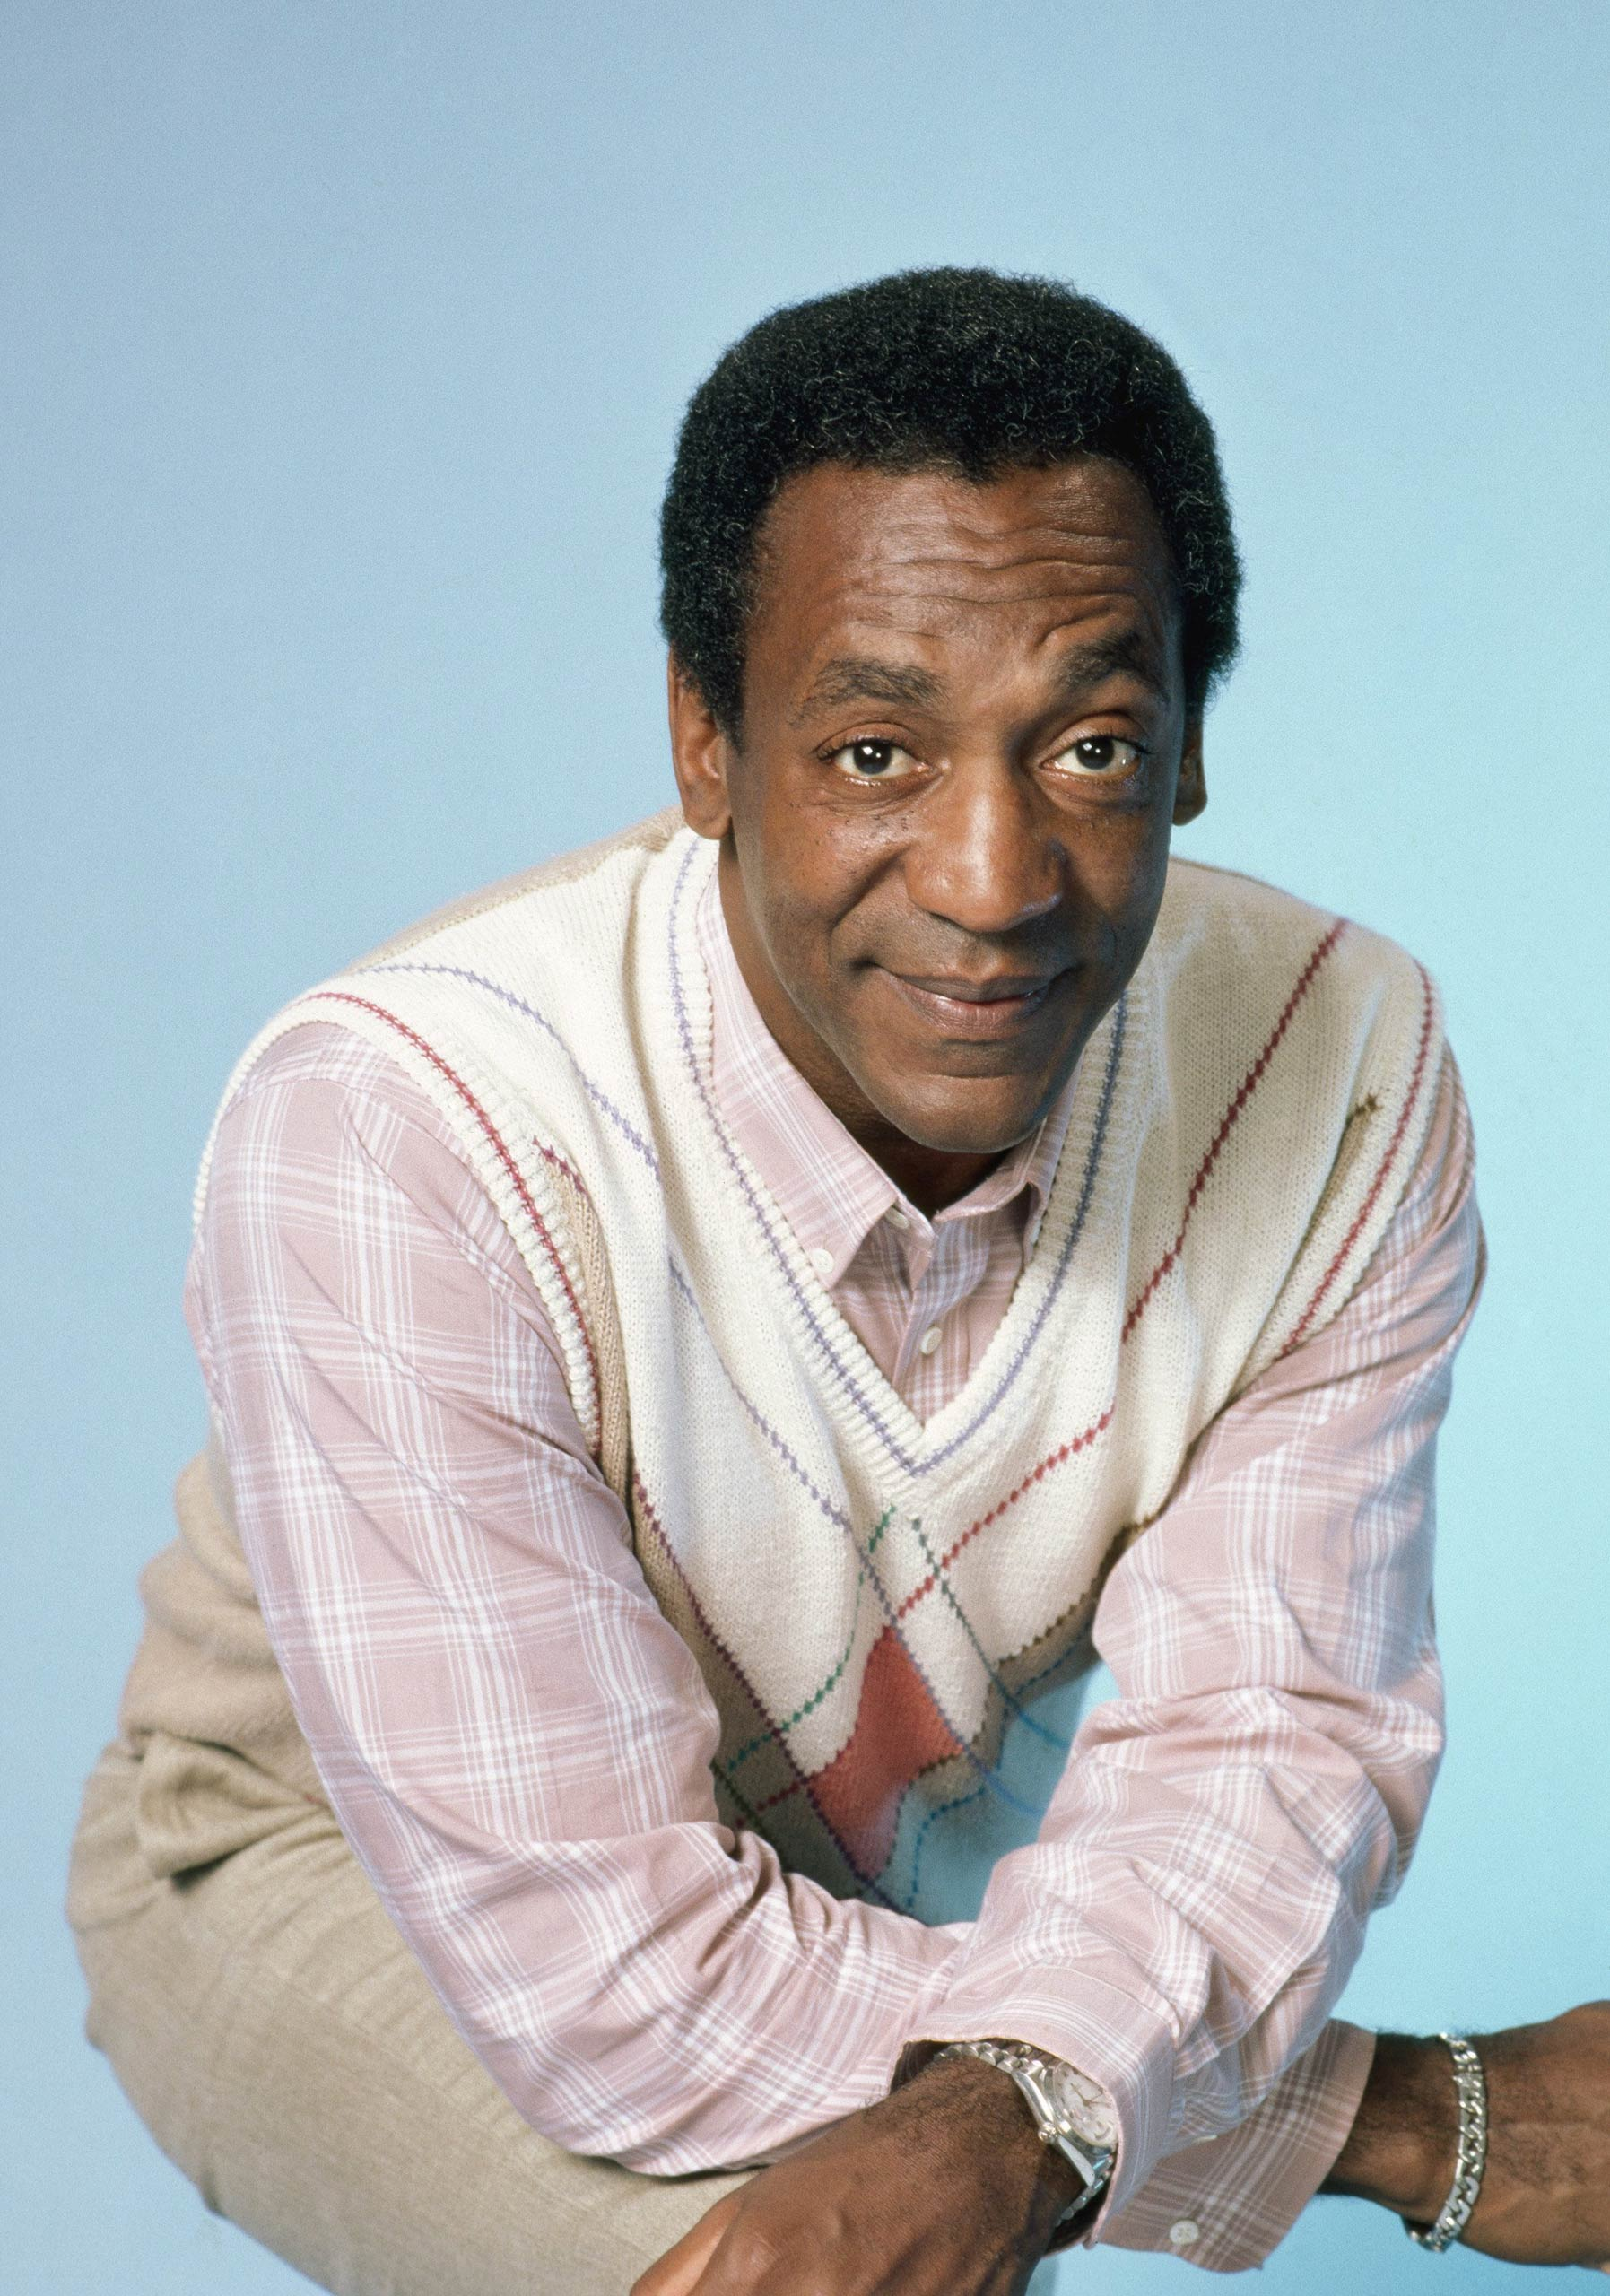 Bill Cosby as Dr. Heathcliff 'Cliff' Huxtable in The Cosby Show.